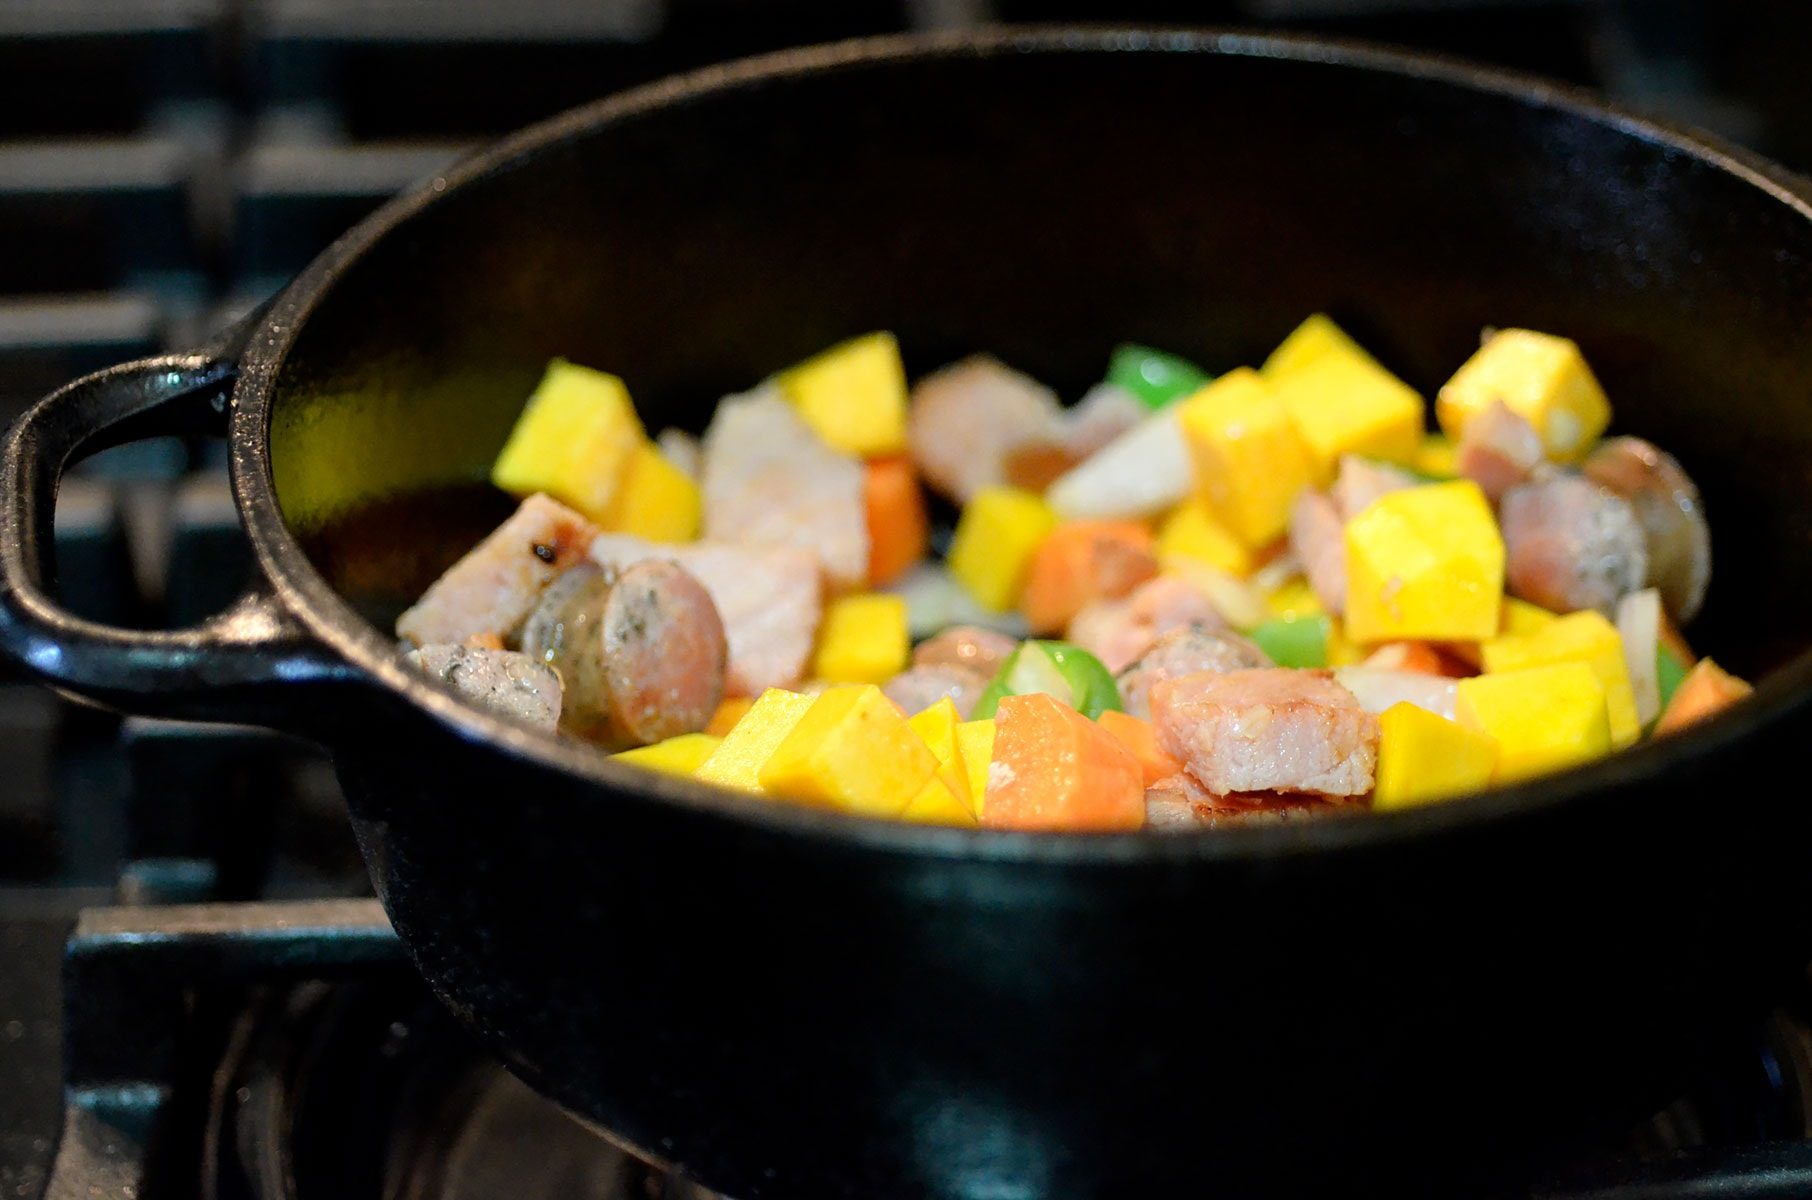 Pot with meat and vegetables